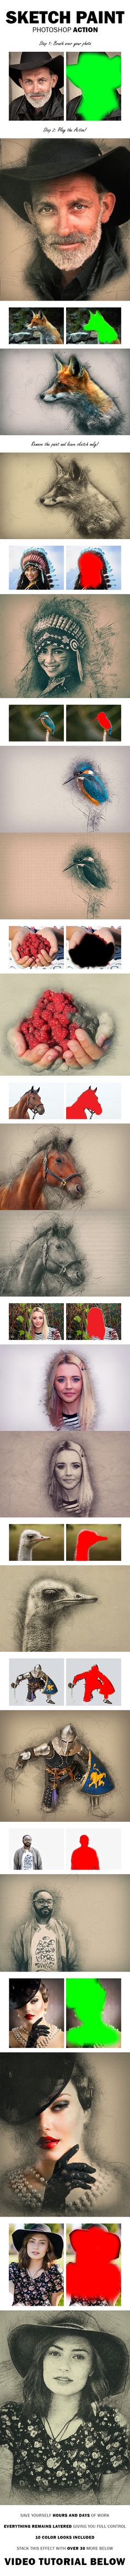 Sketch Paint Photoshop Action photoeffect Download: http://graphicriver.net/item/sketch-paint-photoshop-action/14175528?ref=ksioks